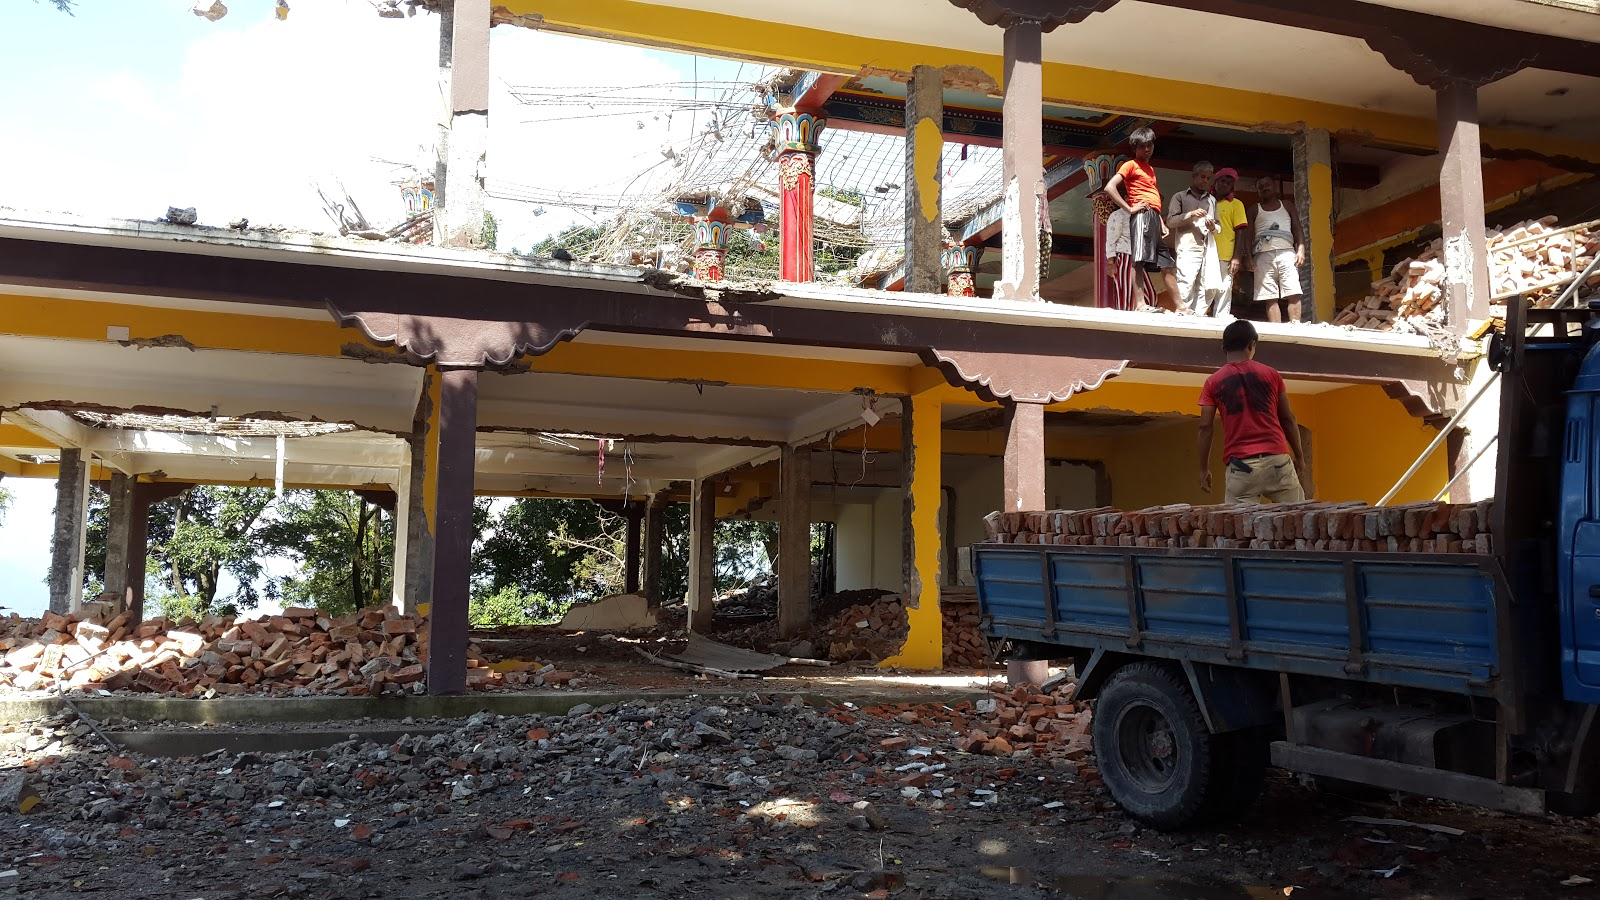 Chenrezig Gompa, later stages of preliminary demolition, September 2015.